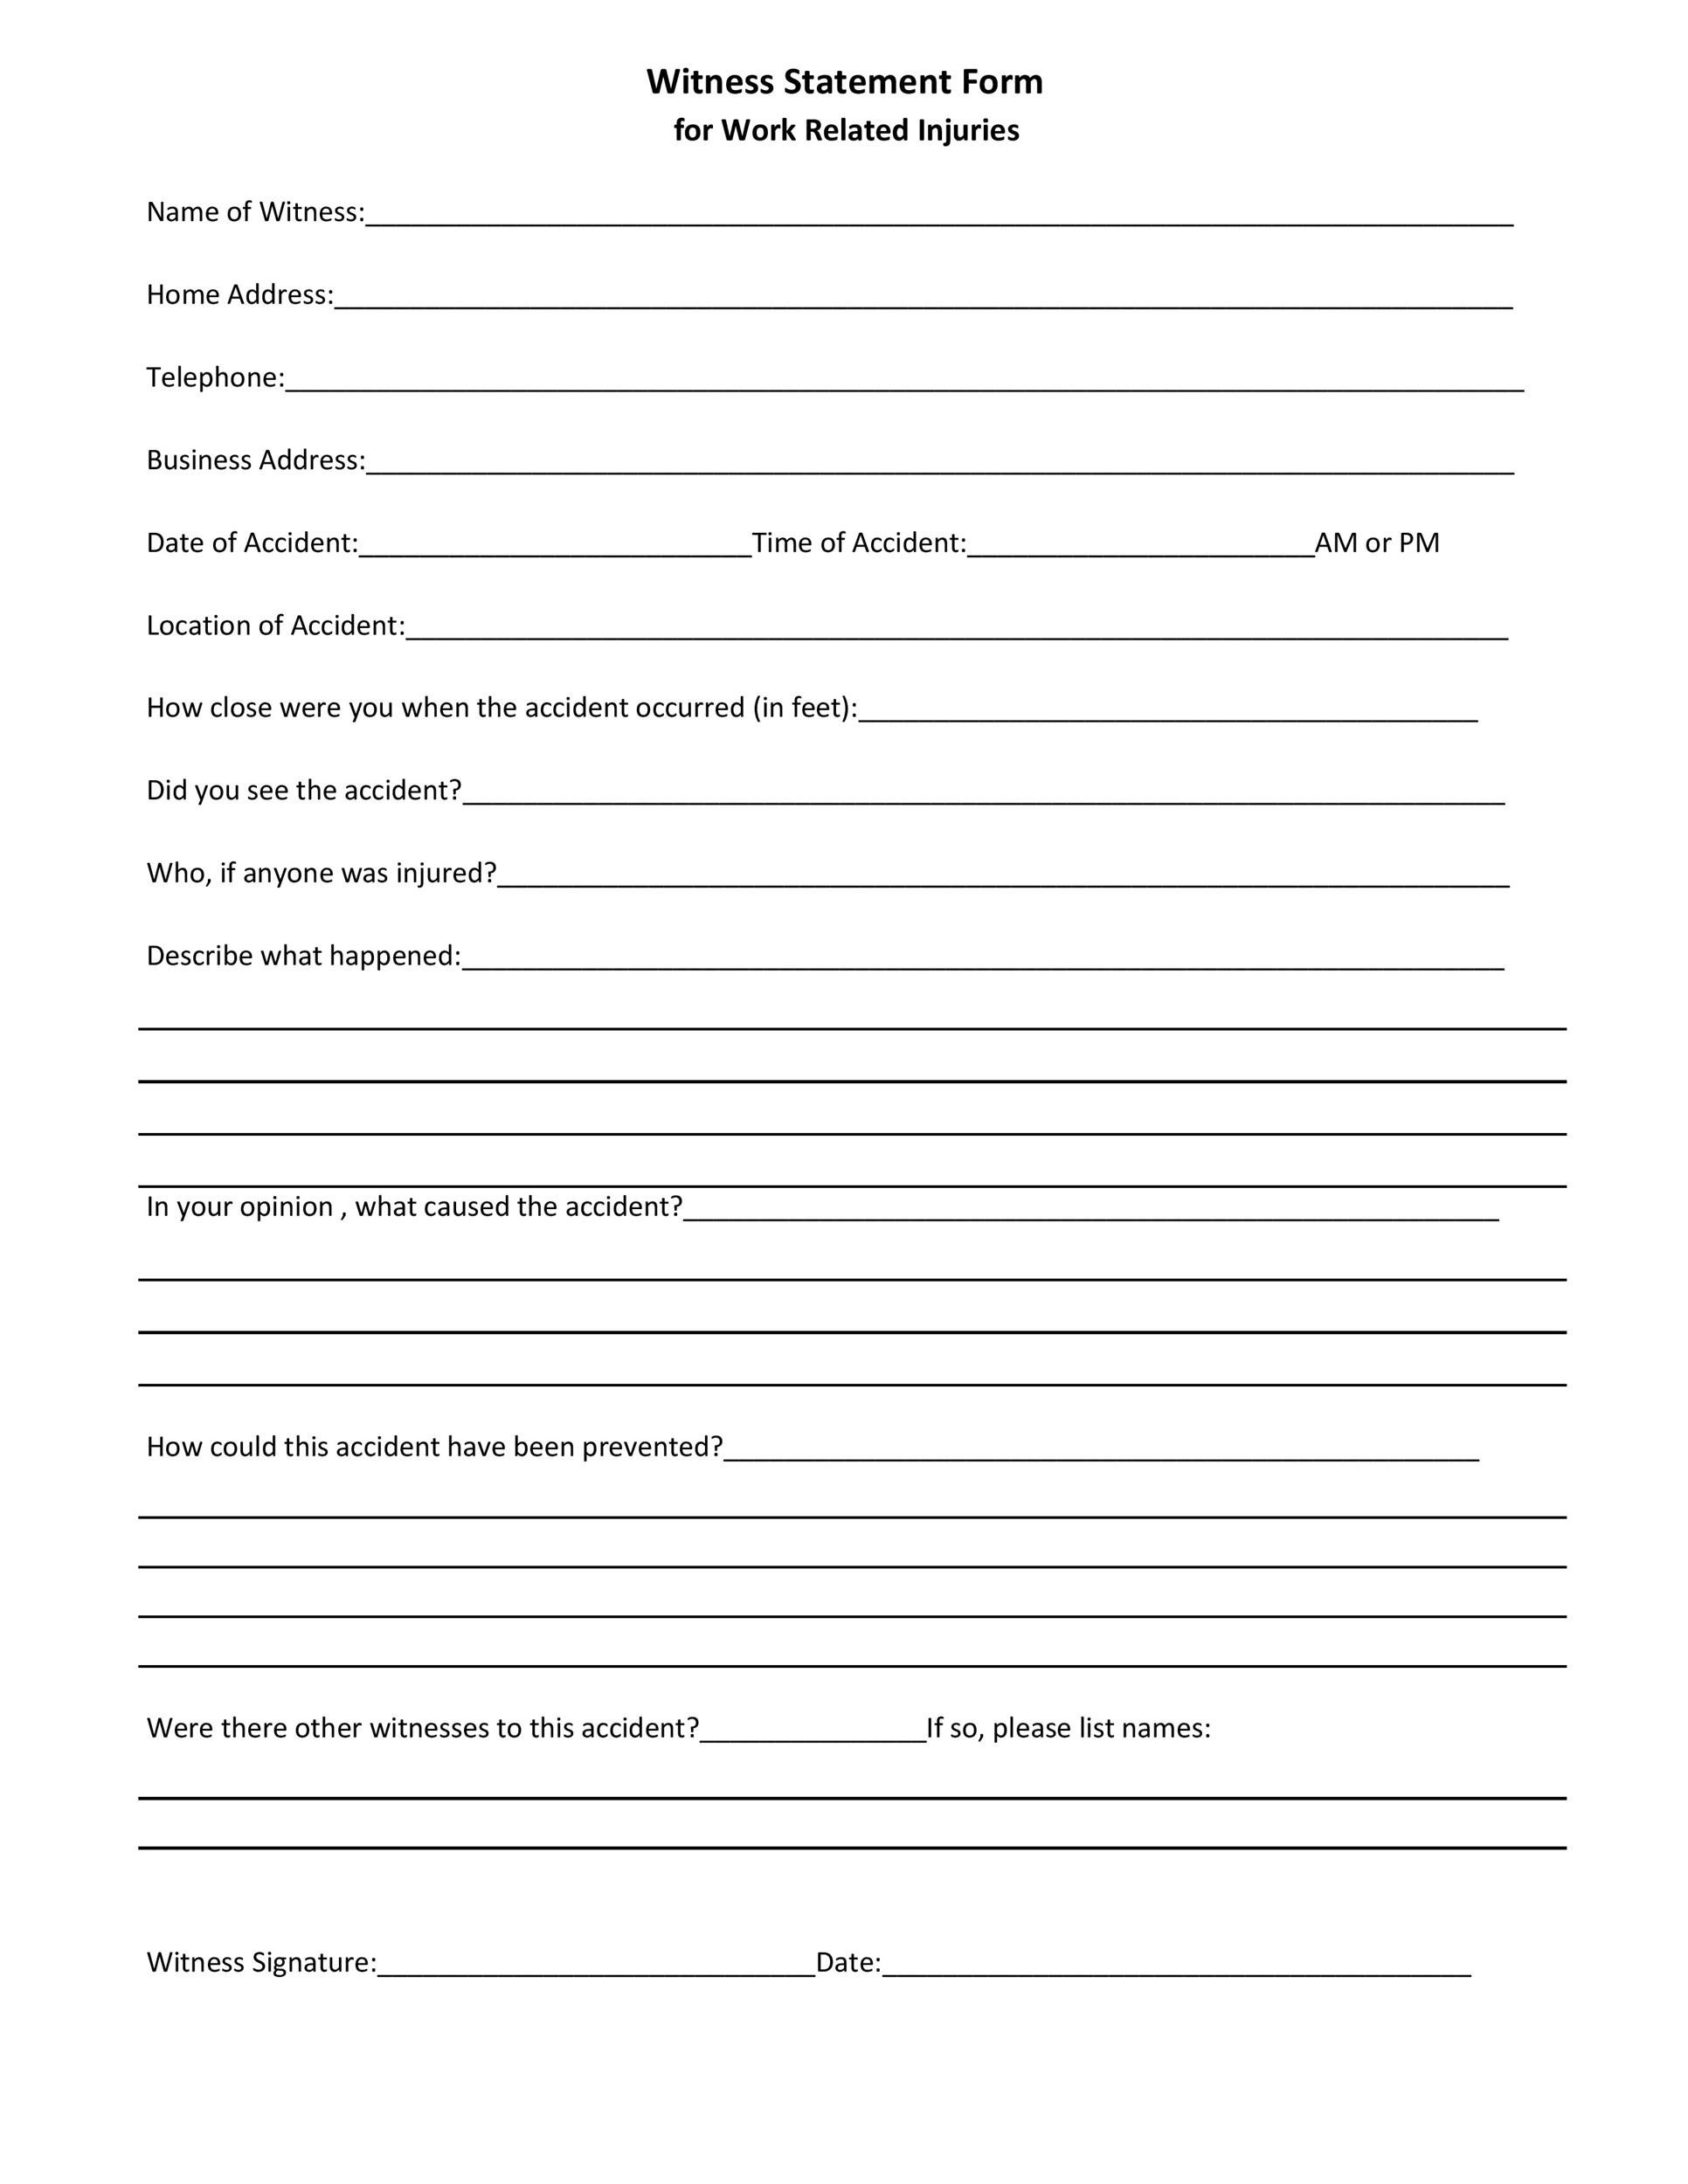 Free witness statement form 16